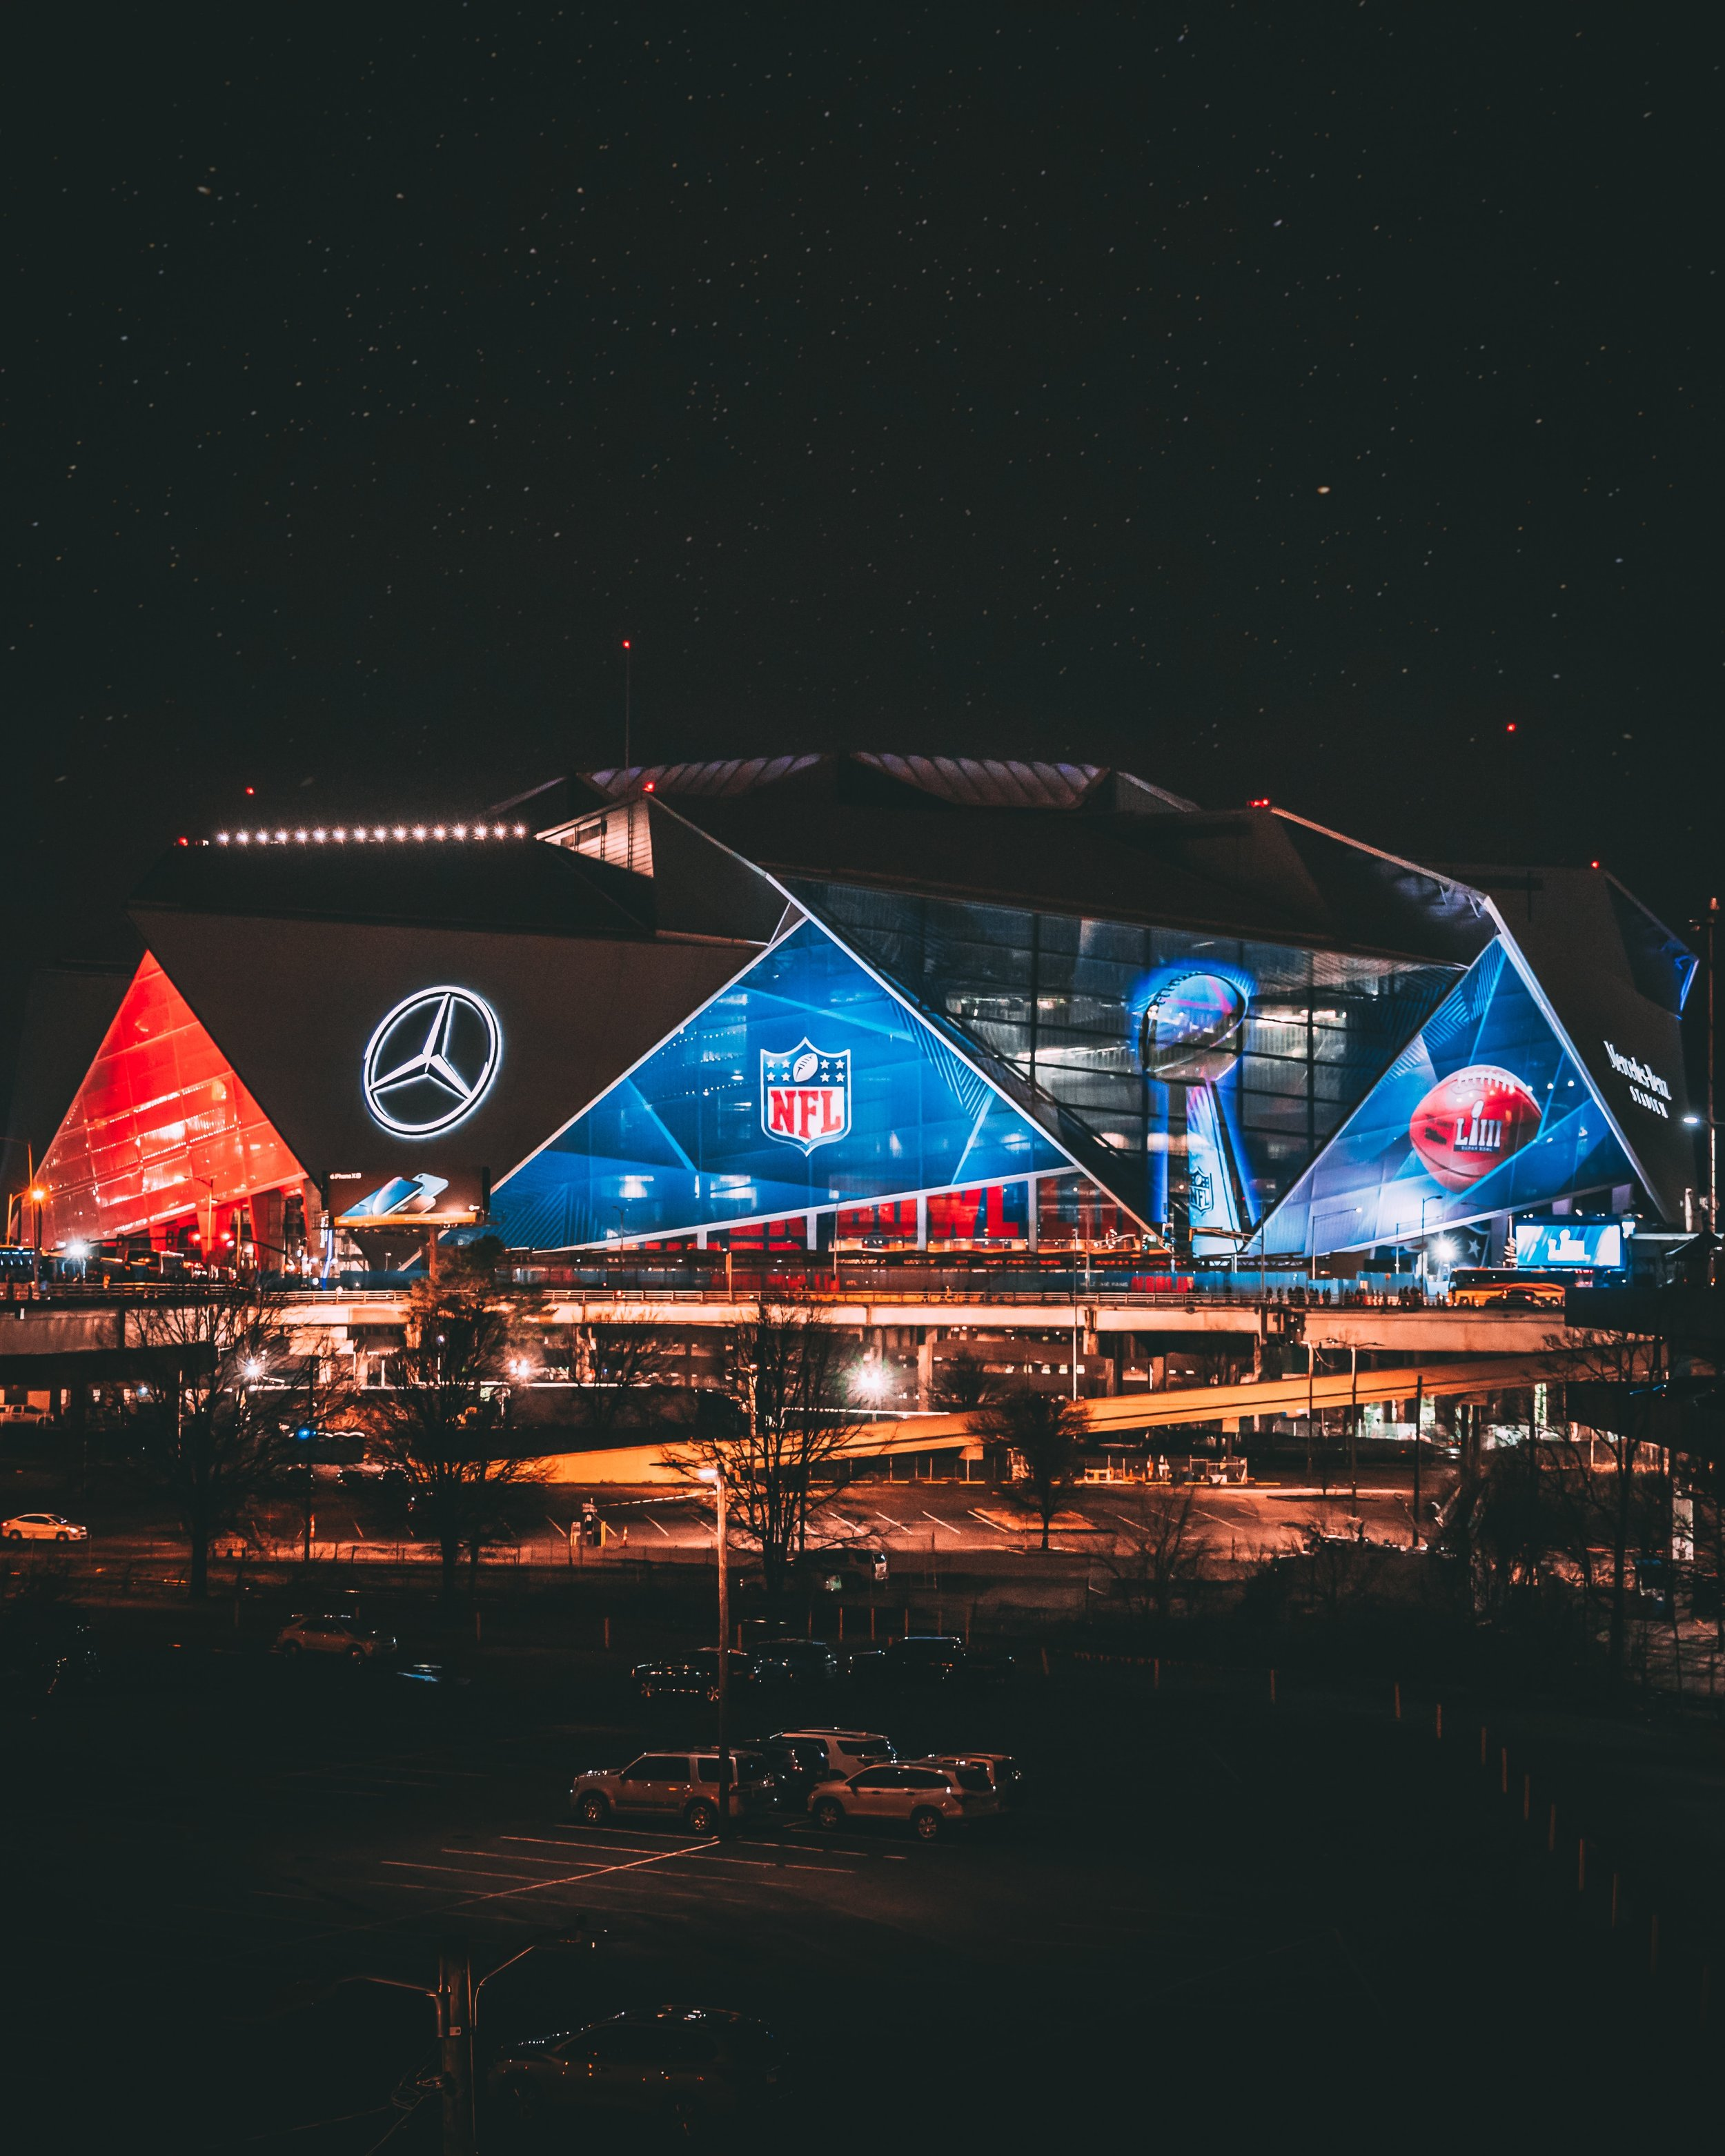 The Superbowl is one of the best events to attend in the US